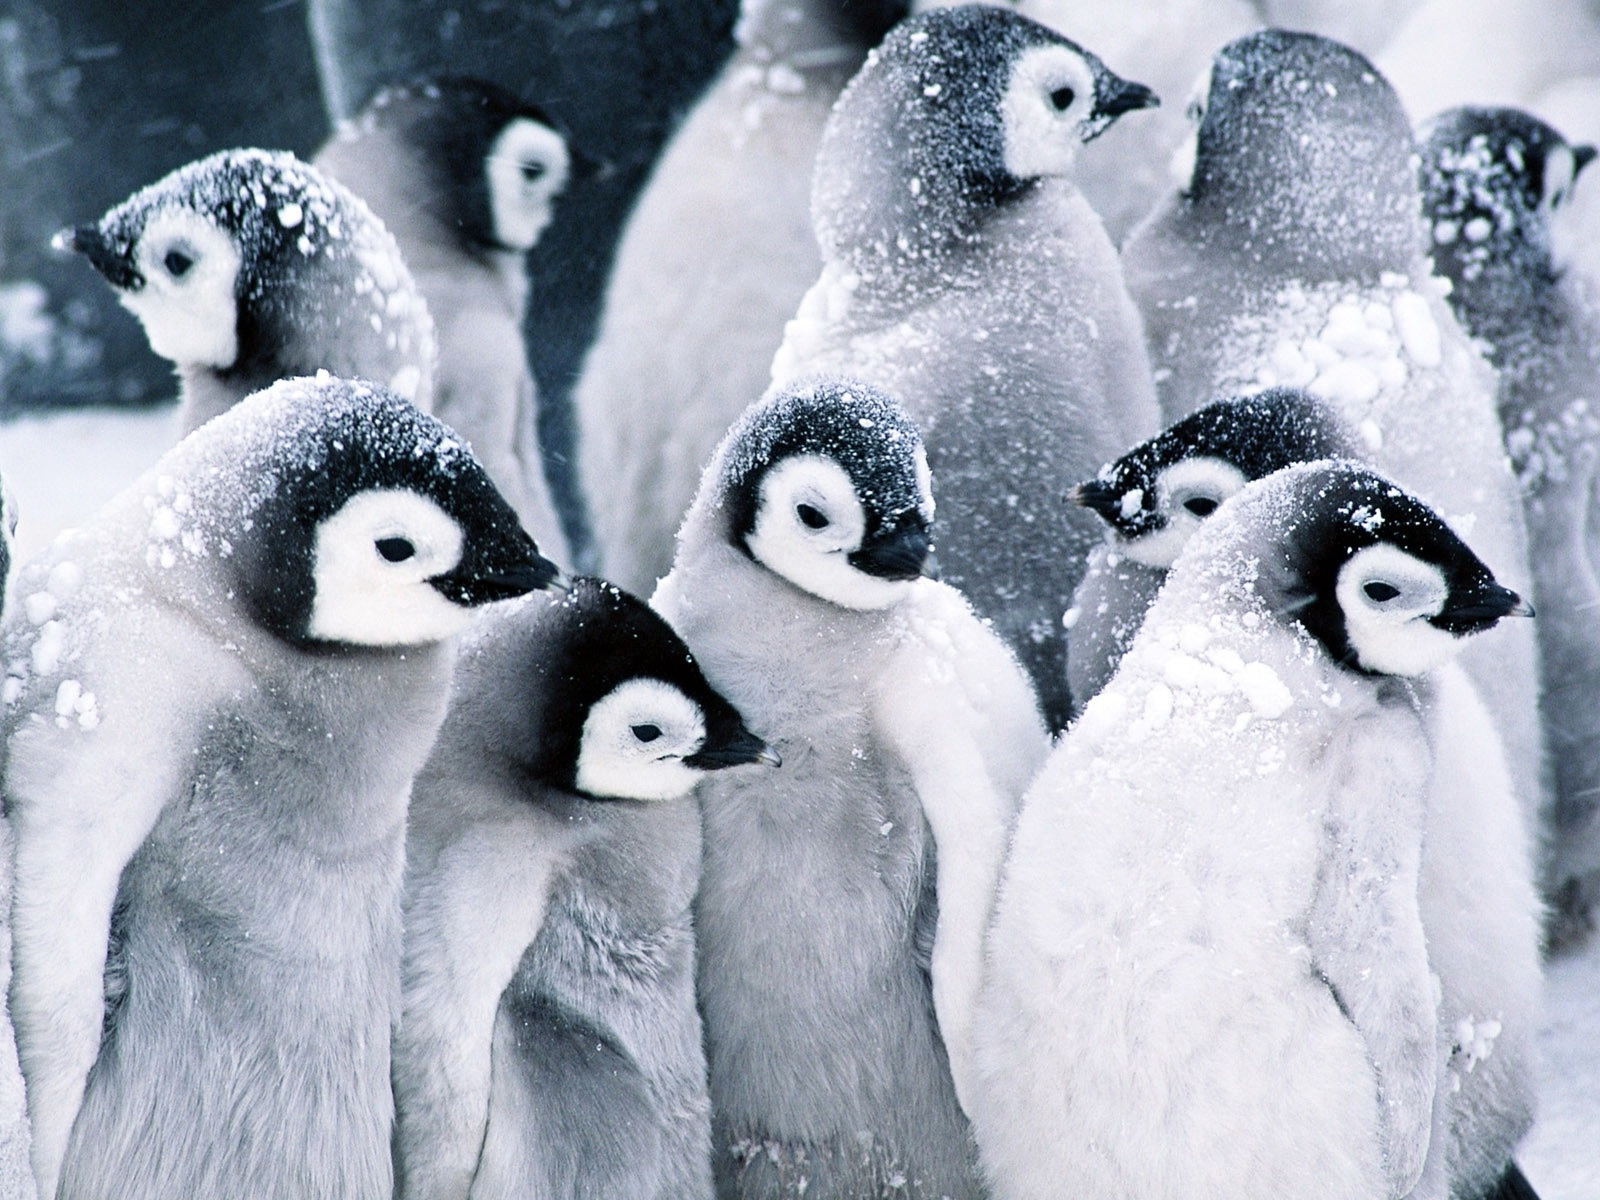 Cute Baby Penguins wallpaper 1600x1200 45966 1600x1200